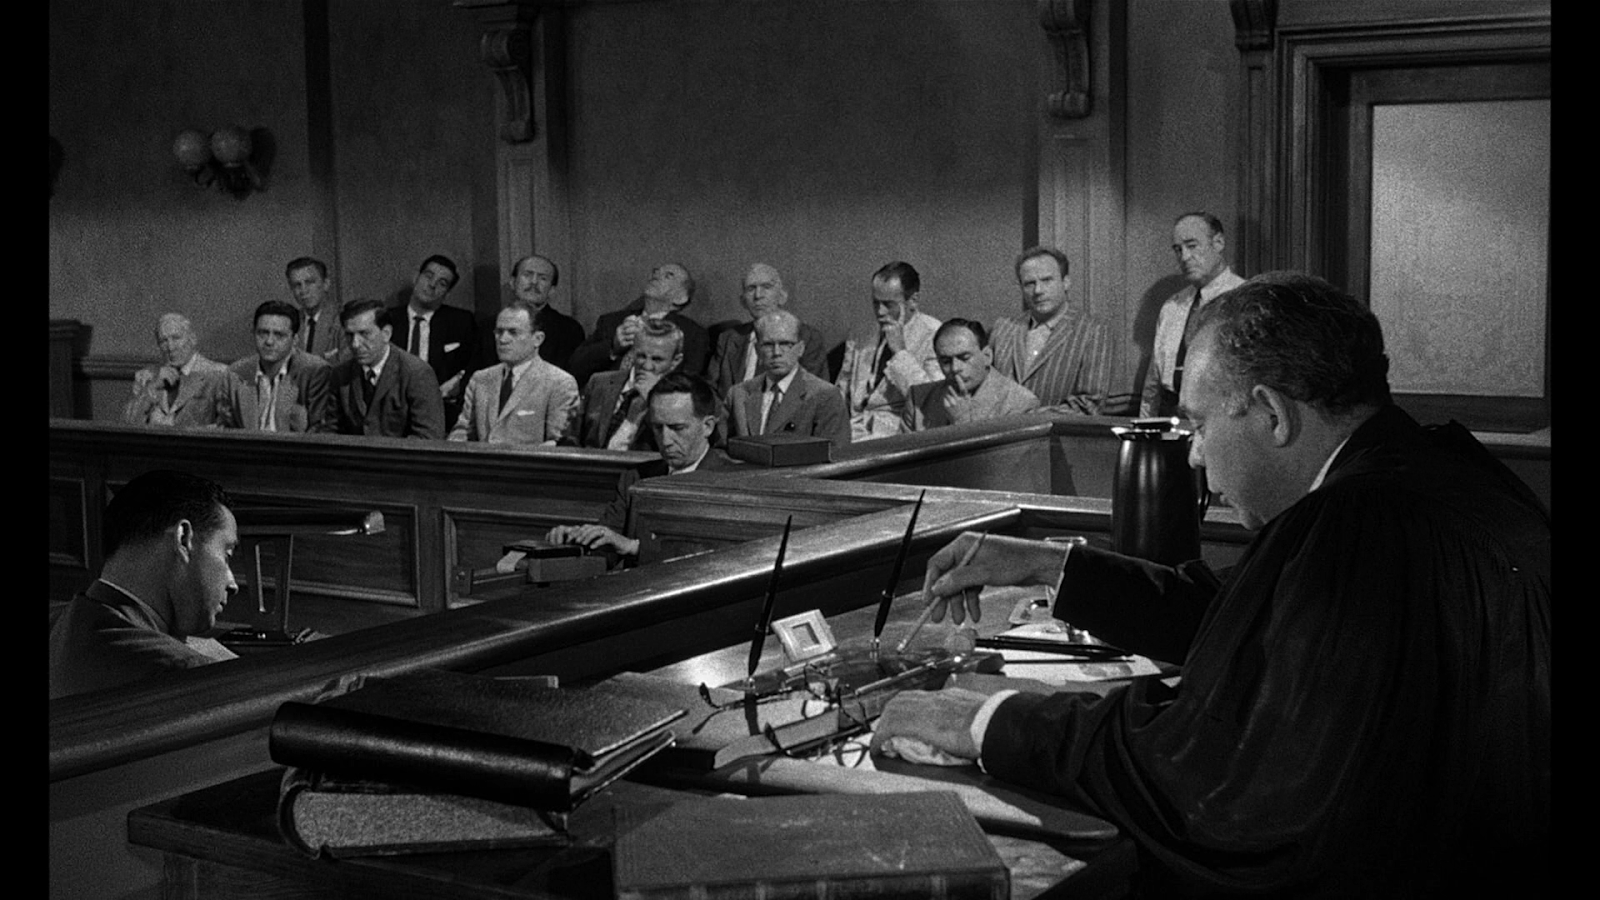 12 Angry Men Wallpapers Backgrounds images